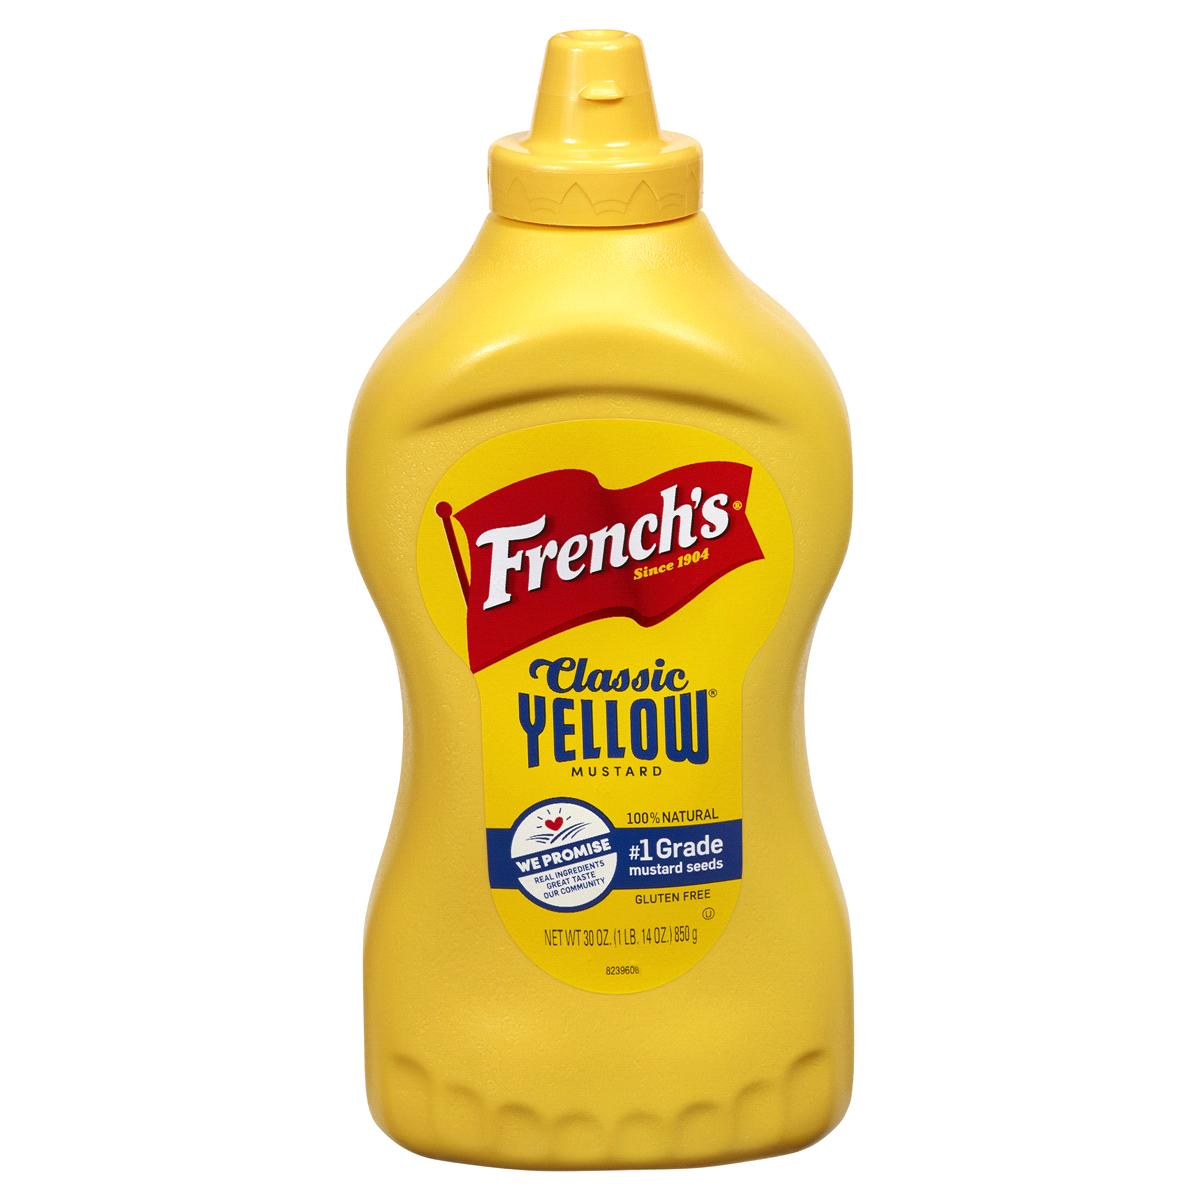 stm>French's Classic Yellow Mustard, Carrefour, 7oz, 195g